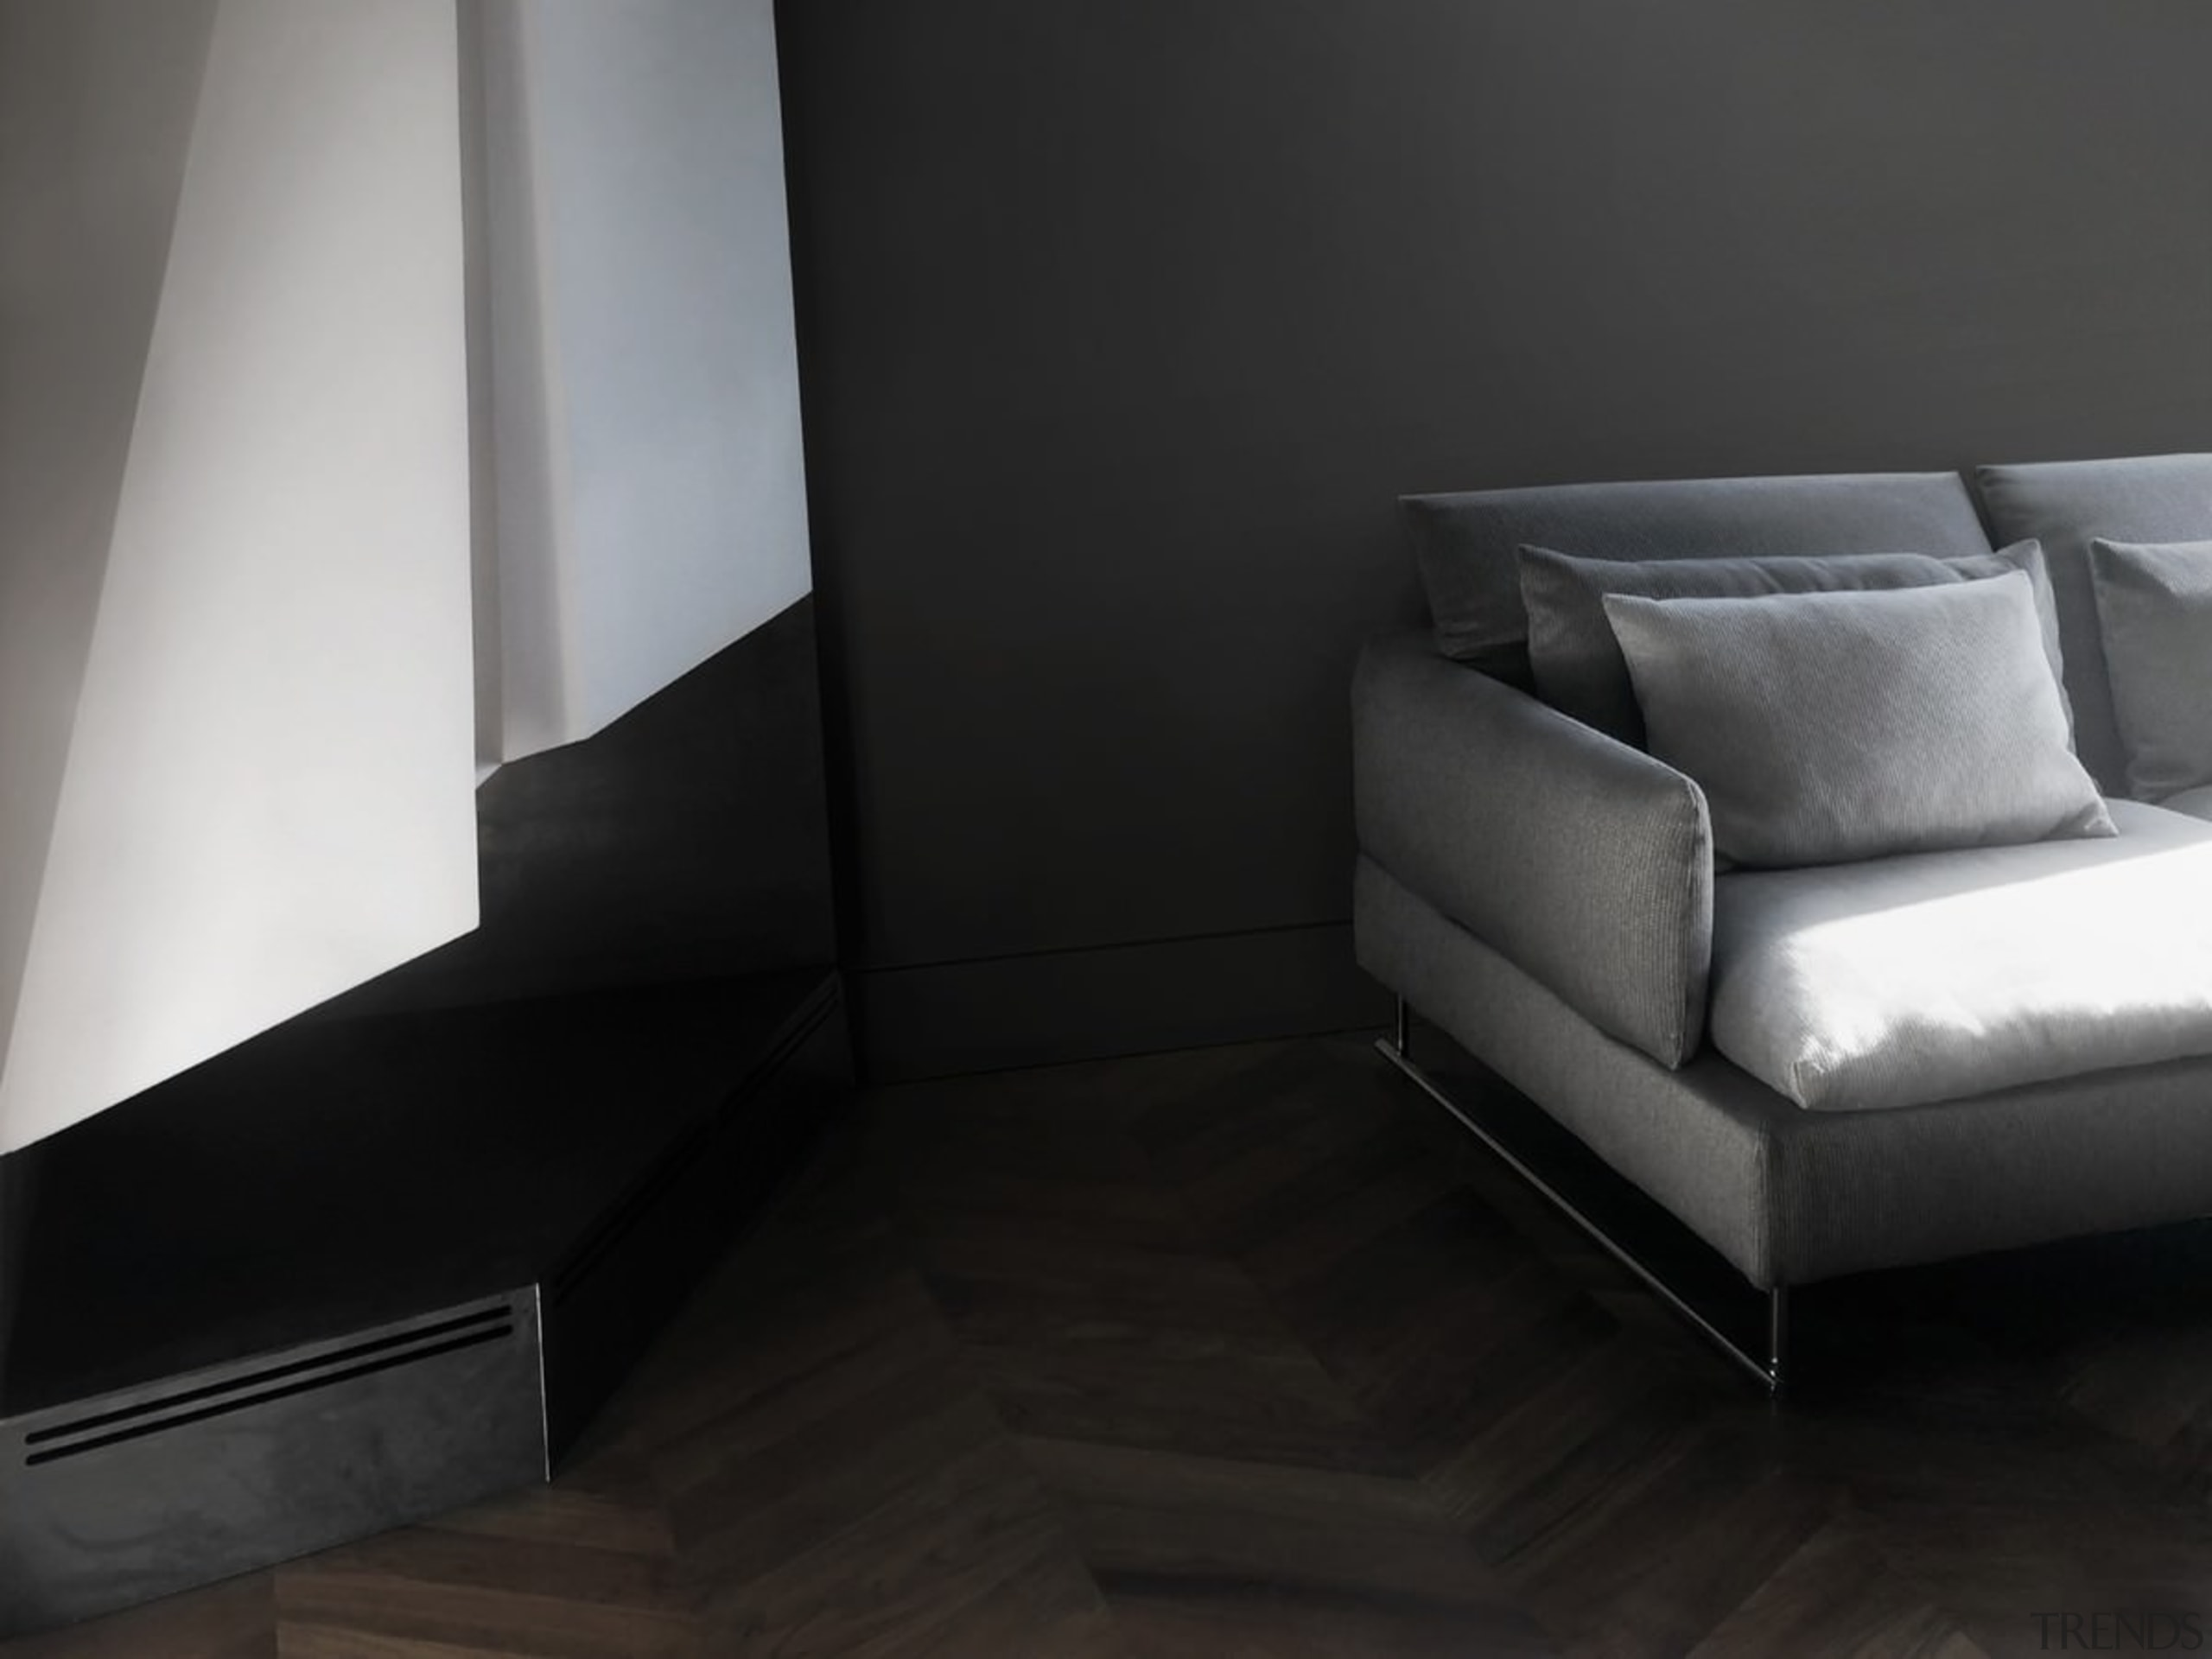 Architect: Tisselli Studio ArchitettiPhotography by Filippo Tisselli angle, chair, chaise longue, couch, floor, flooring, furniture, interior design, living room, product design, sofa bed, black